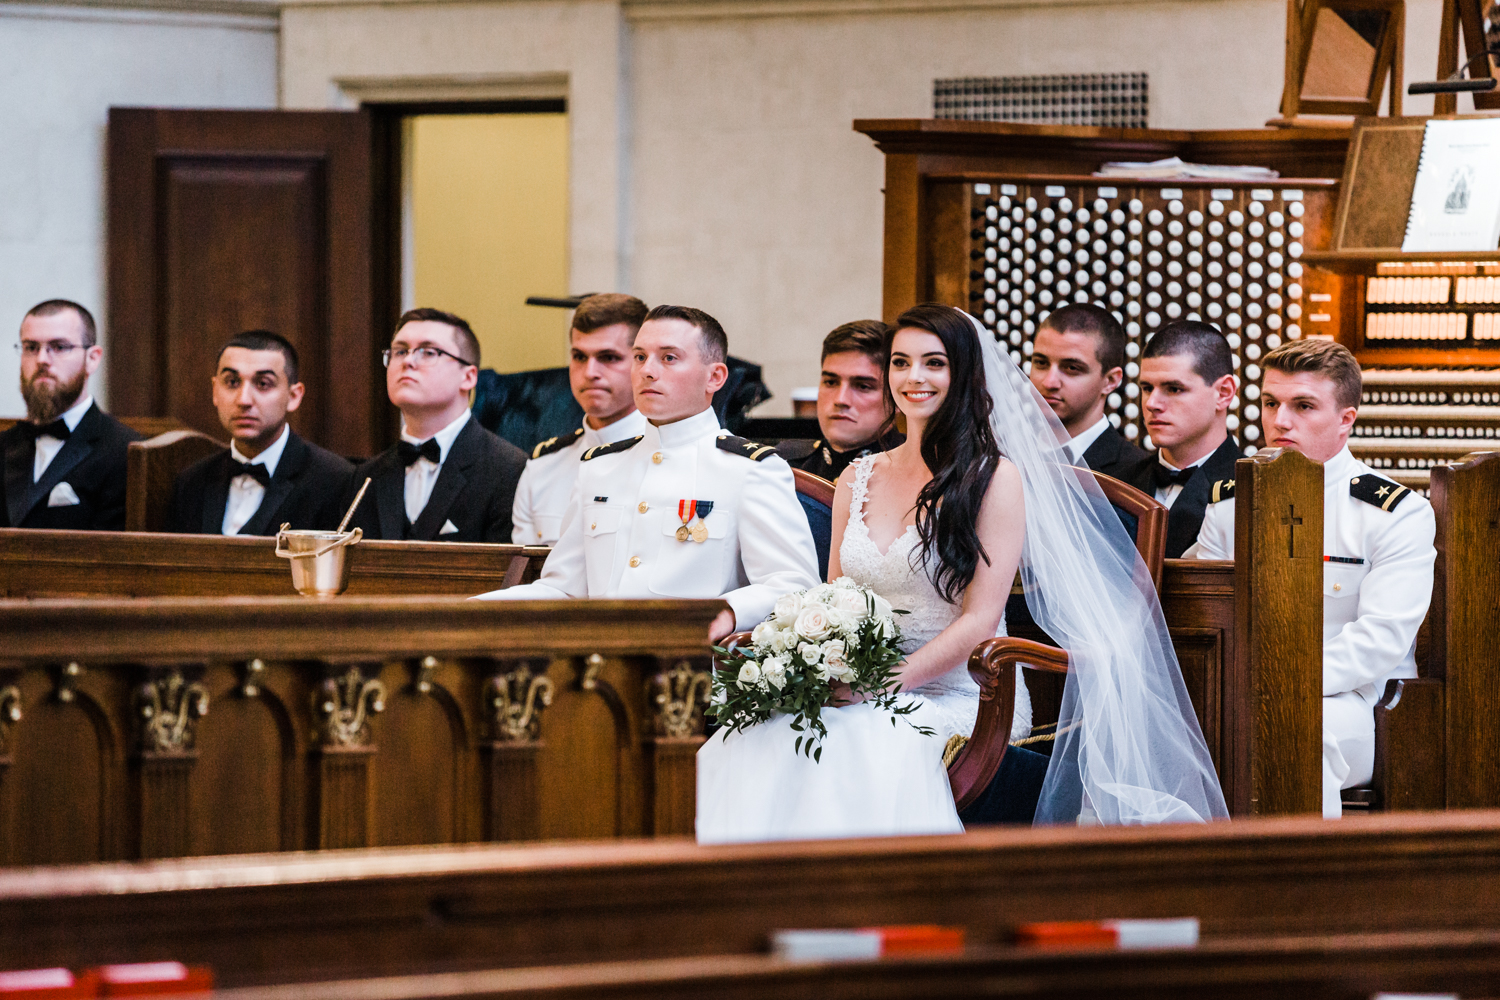 bride and groom at their wedding ceremony in Annapolis, Maryland